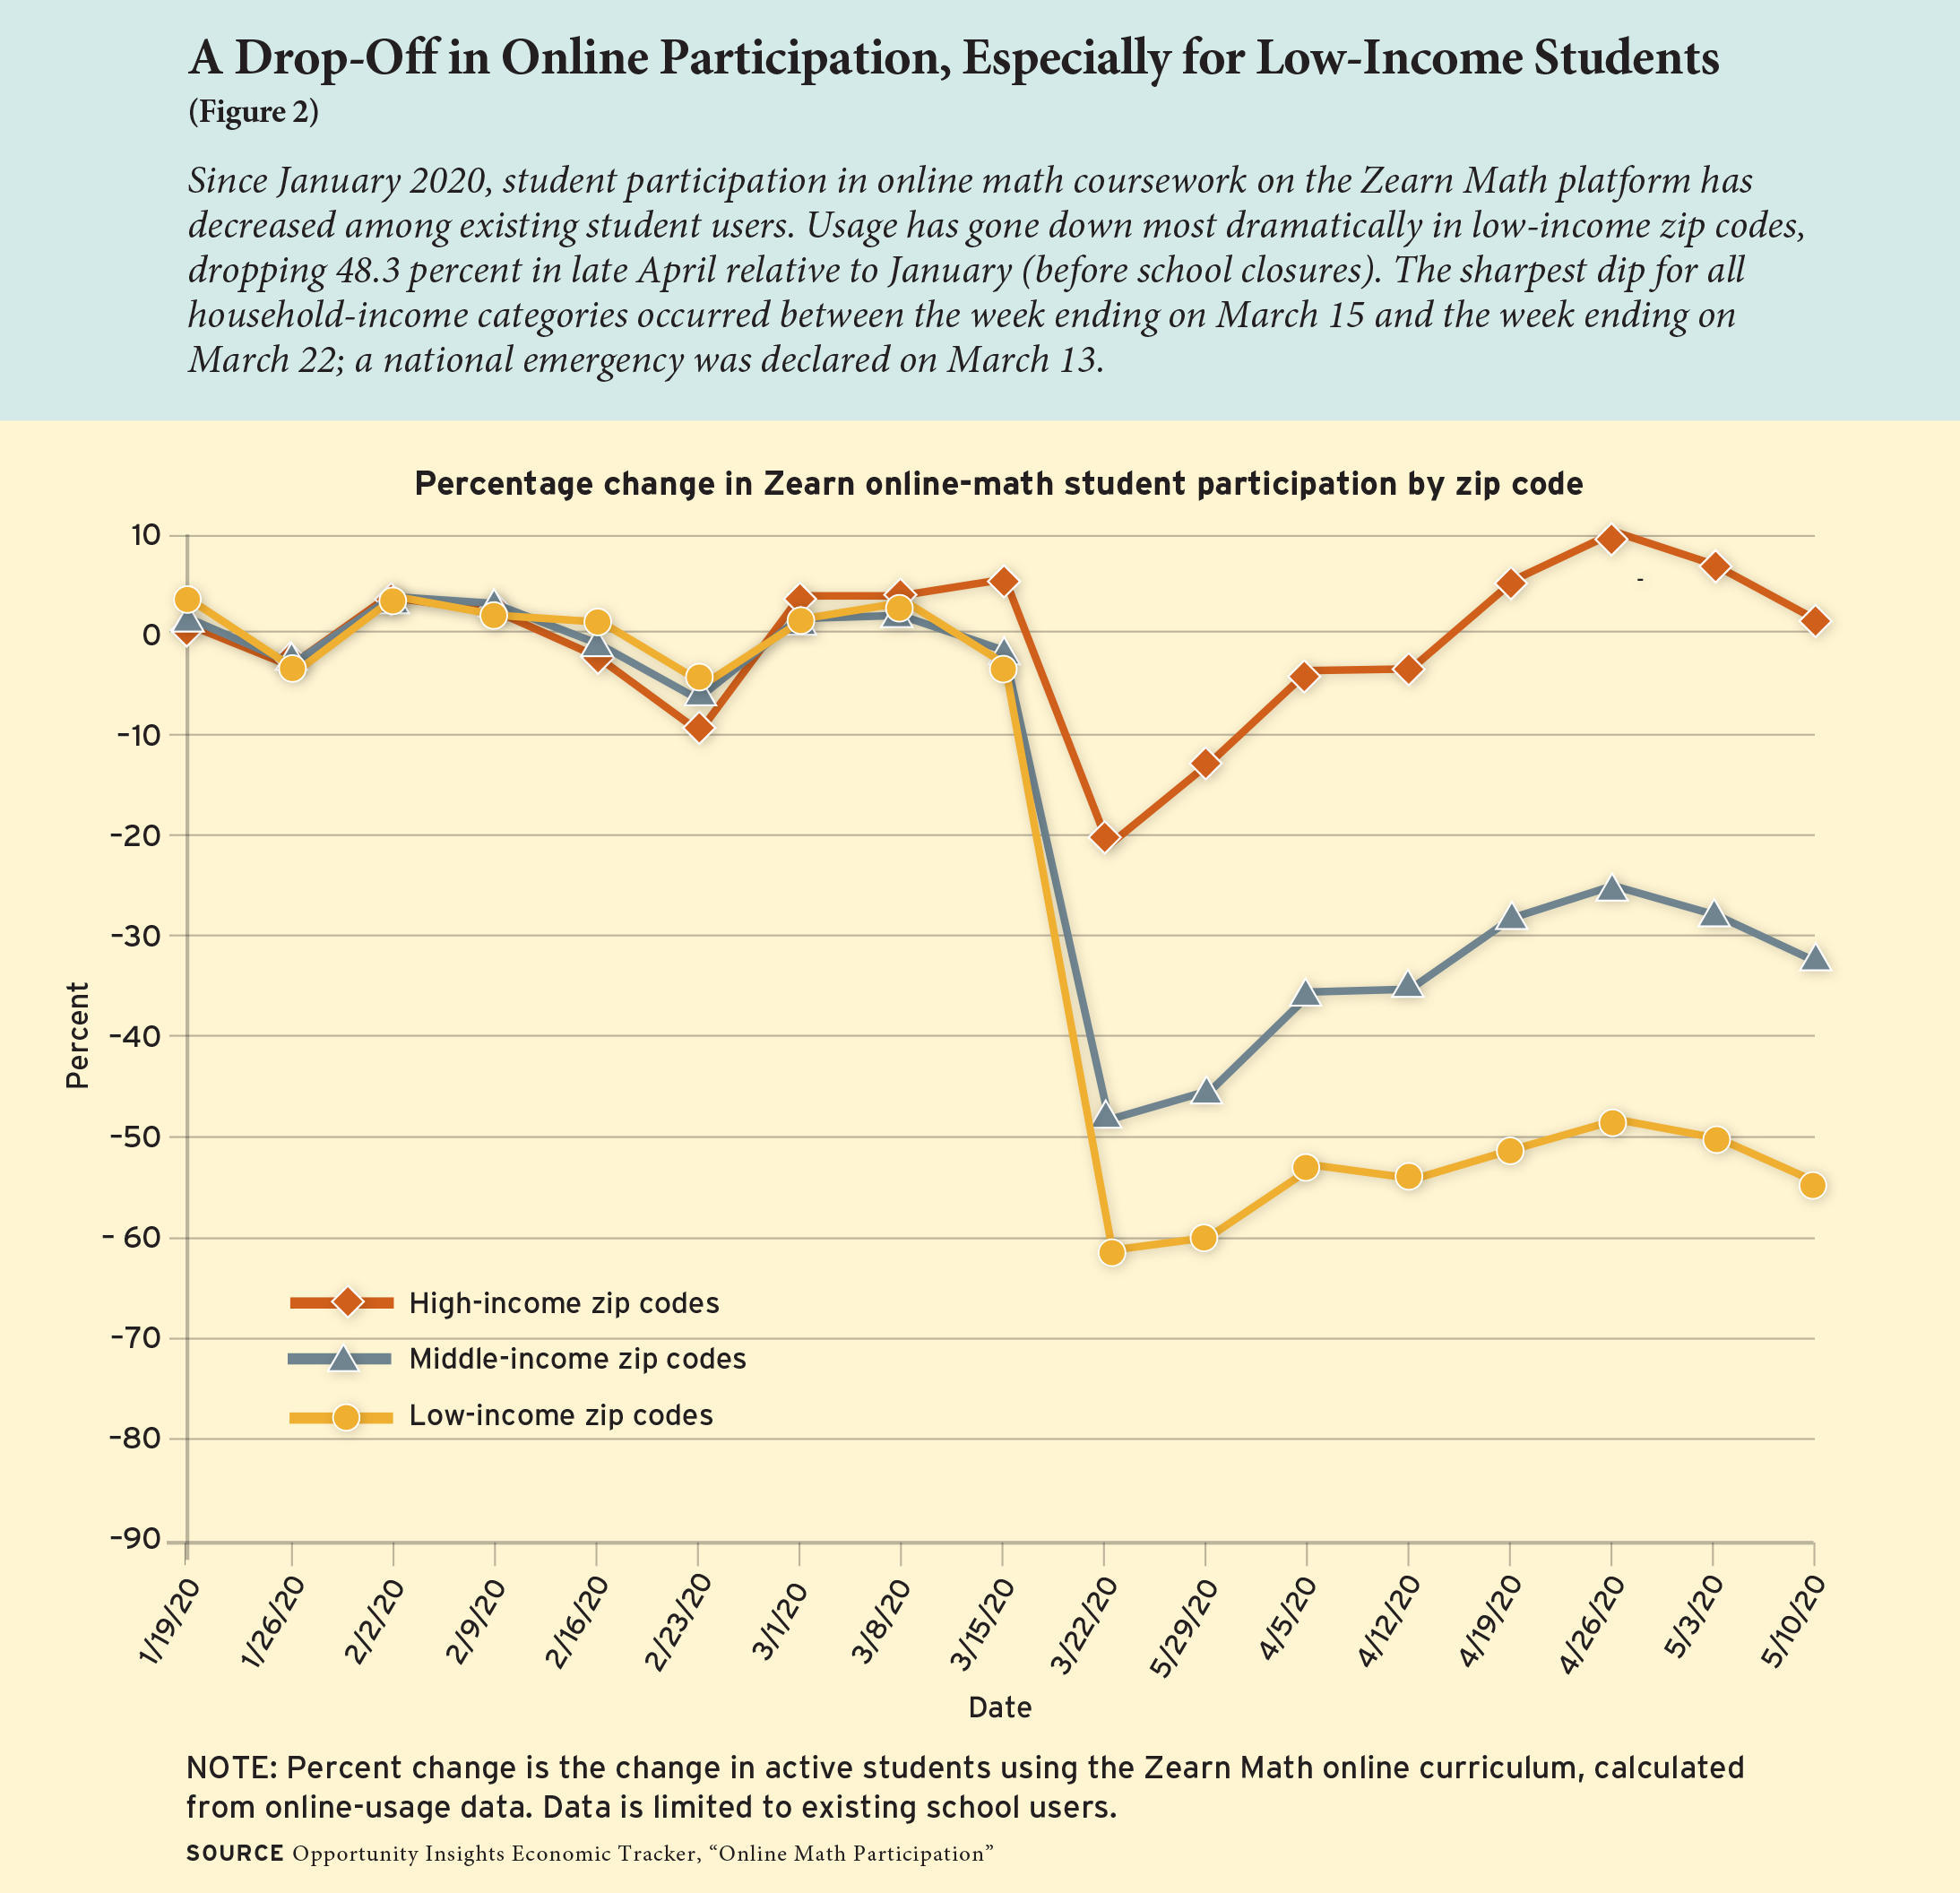 Figure 2: A Drop-Off in Online Participation, Especially for Low-Income Students